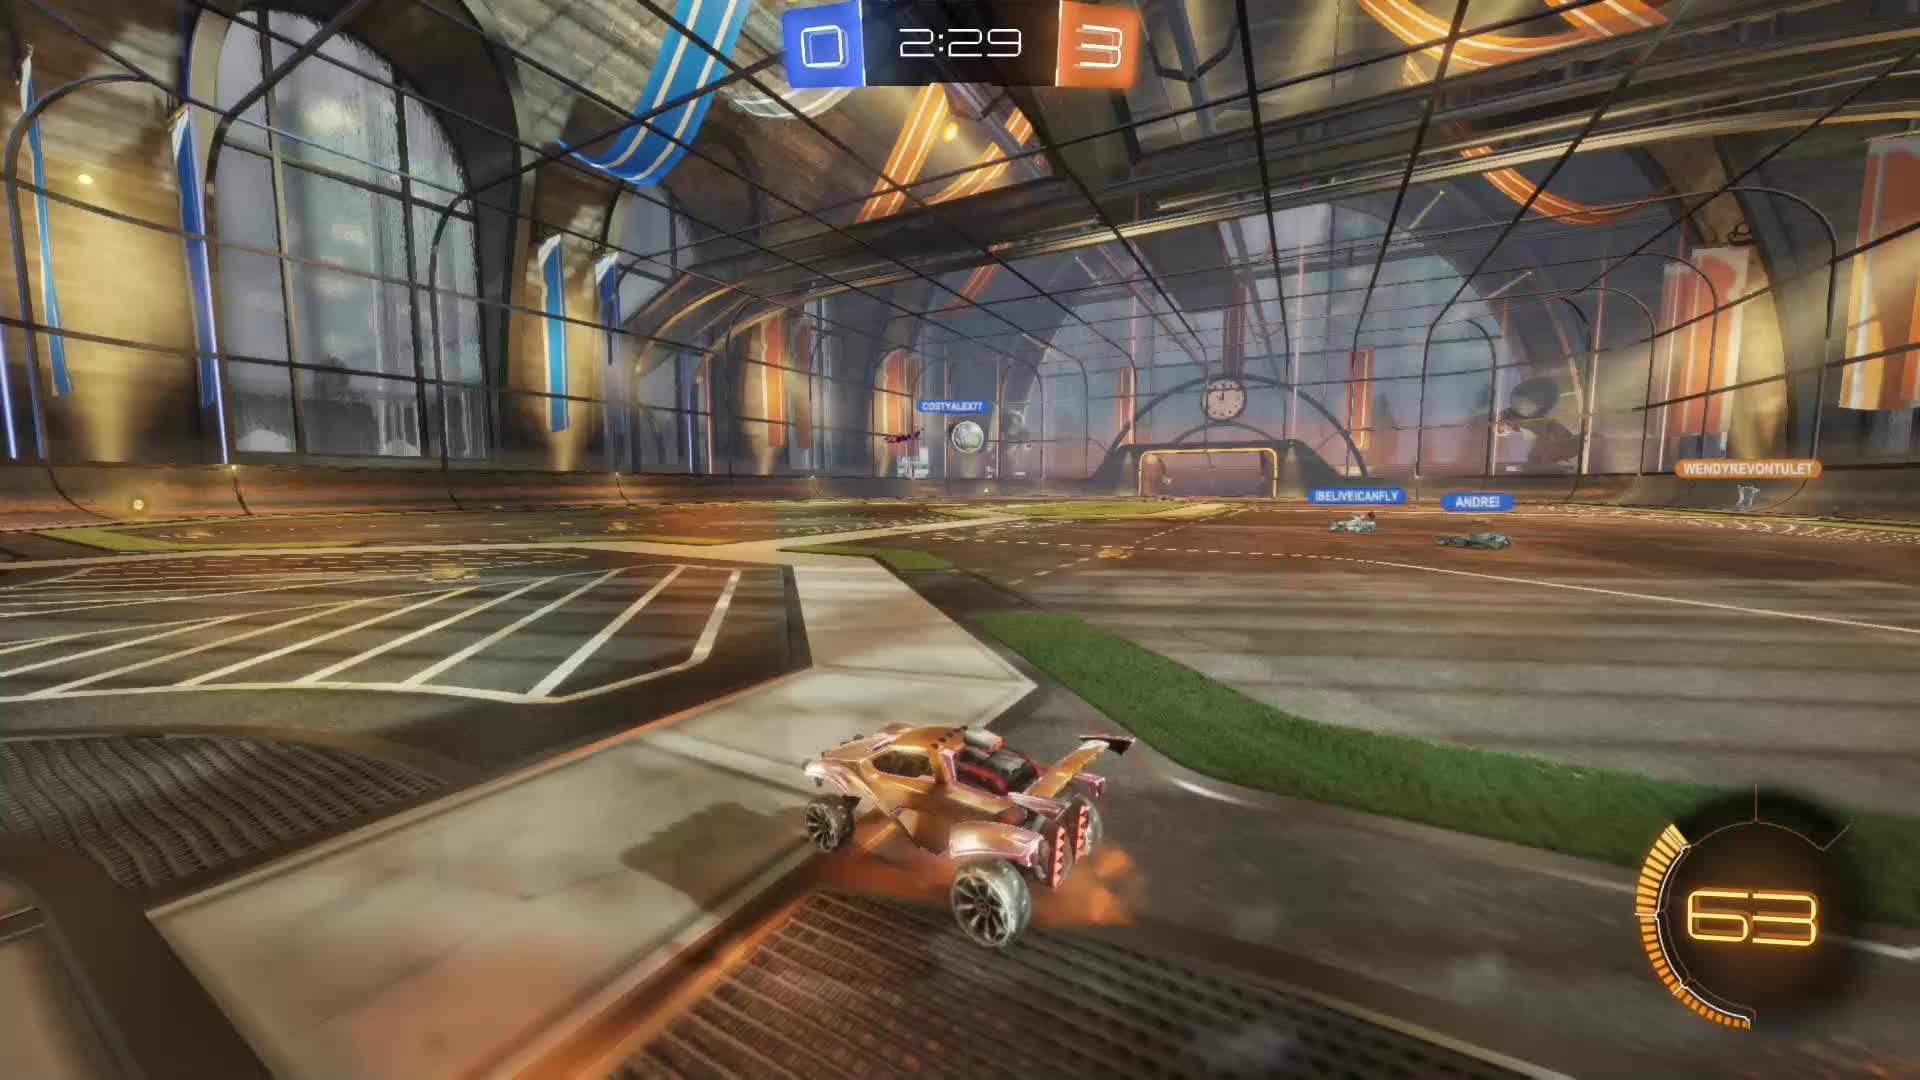 Gif Your Game, GifYourGame, Goal, Rocket League, RocketLeague, SCOTLAND FOREVER, Goal 4: SCOTLAND FOREVER GIFs